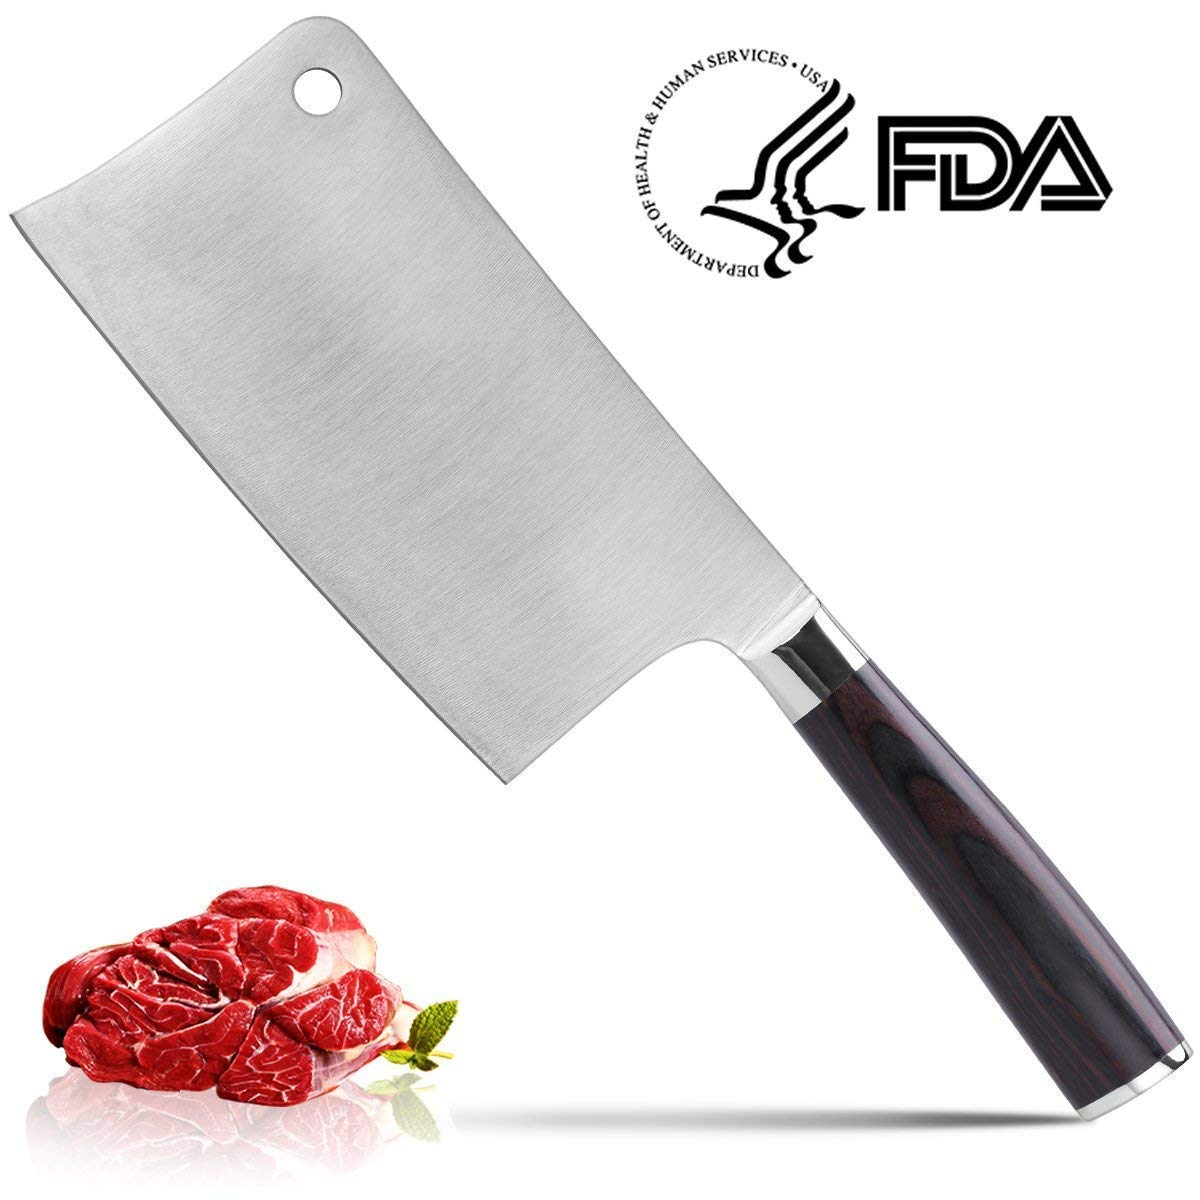 Meat Cleaver Professional Butcher Knife 7-inch Cleaver Knives Vegetable Cutter Heavy Duty Chopper Butcher High Carbon Stainless for Home Kitchen or Restaurant …